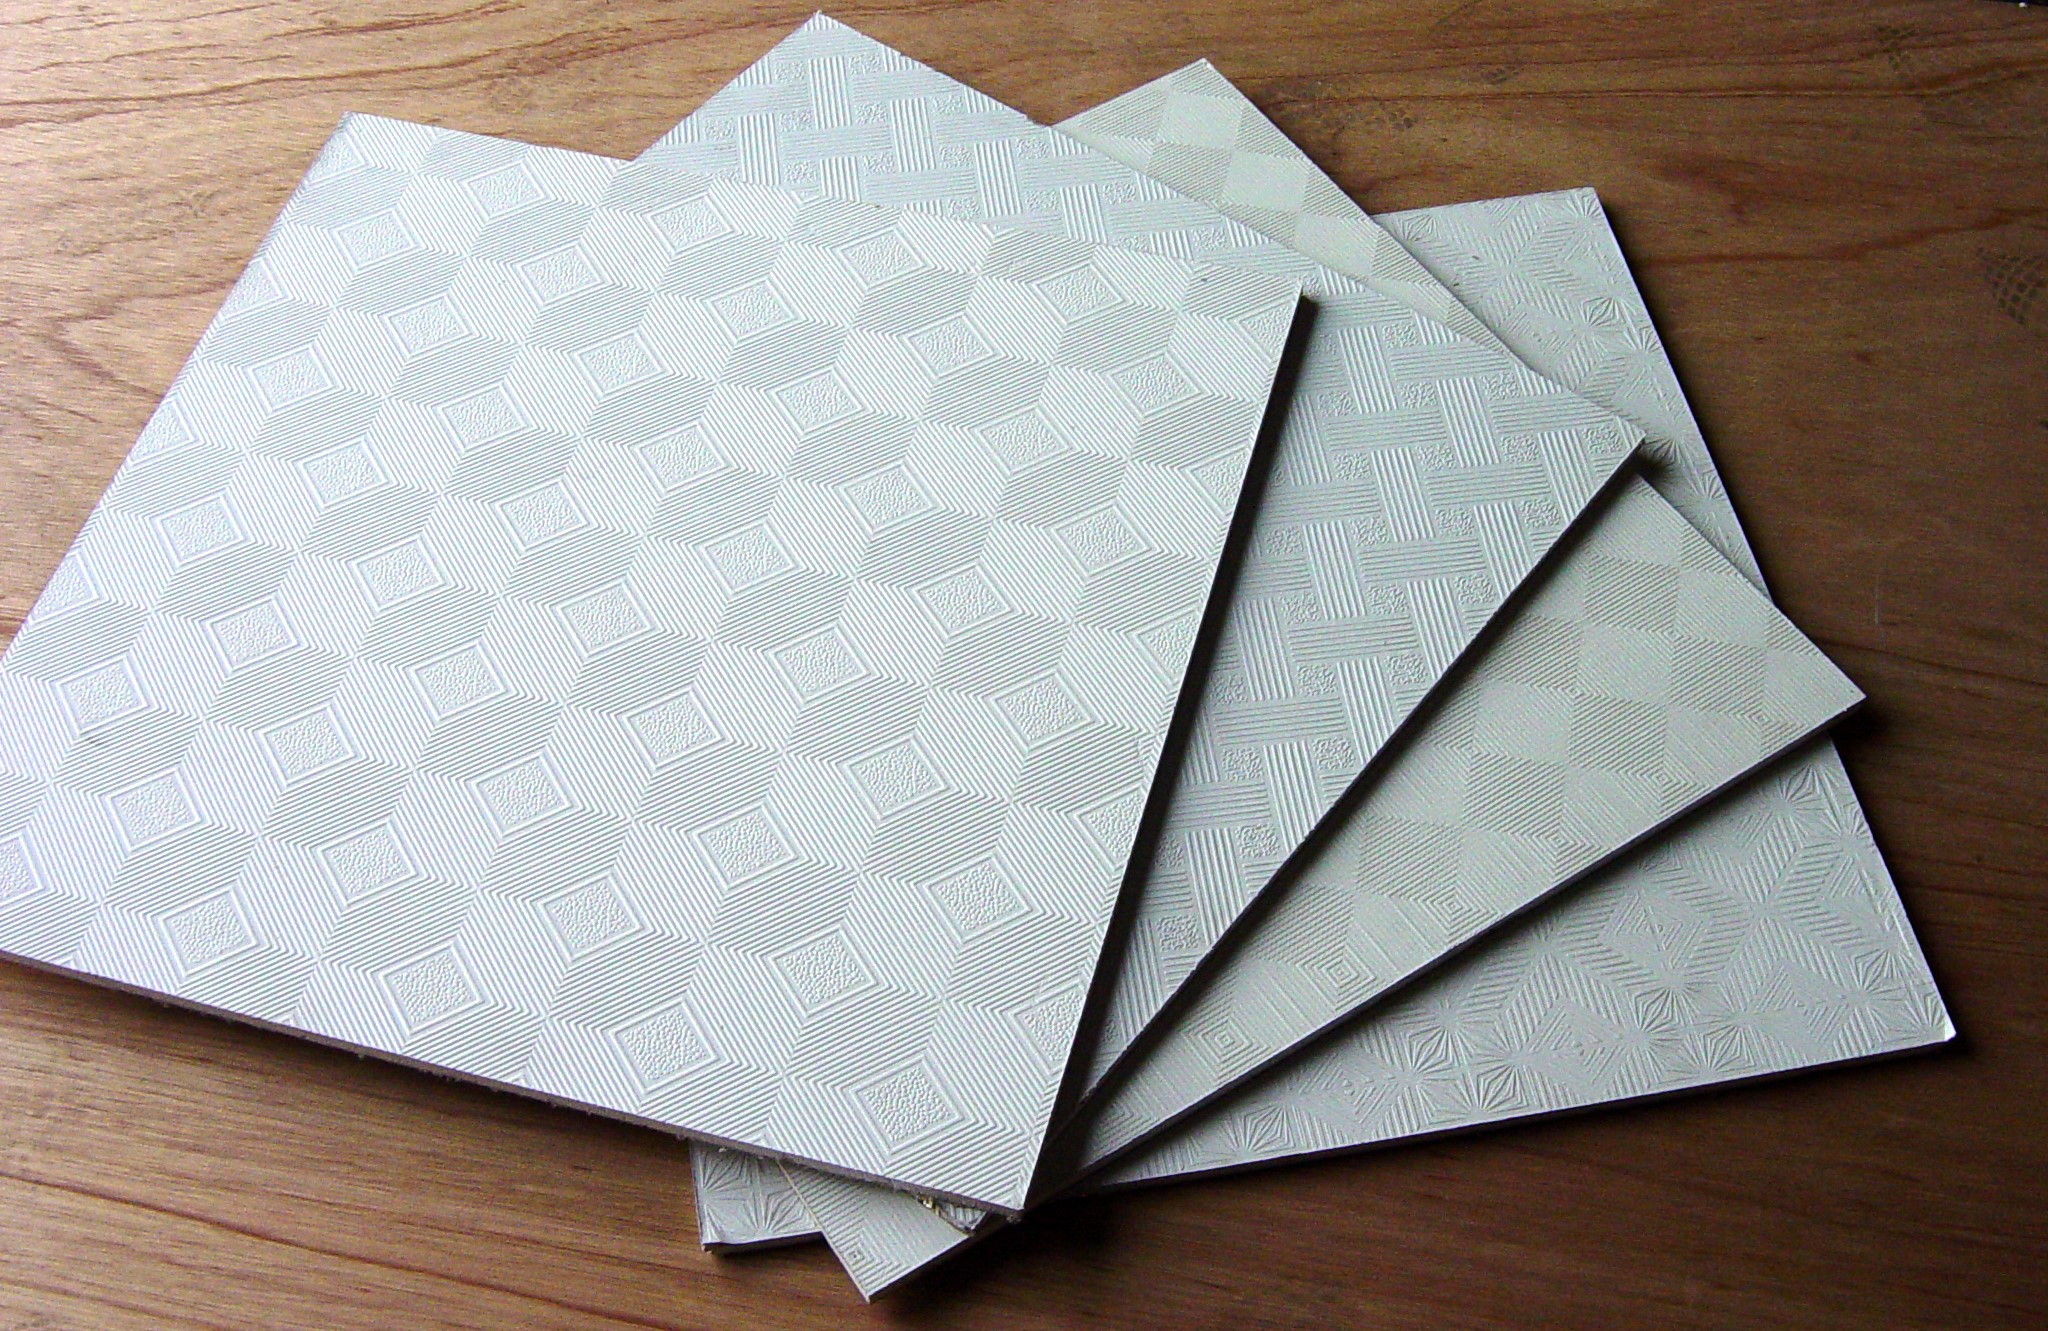 How to cut plastic ceiling tiles